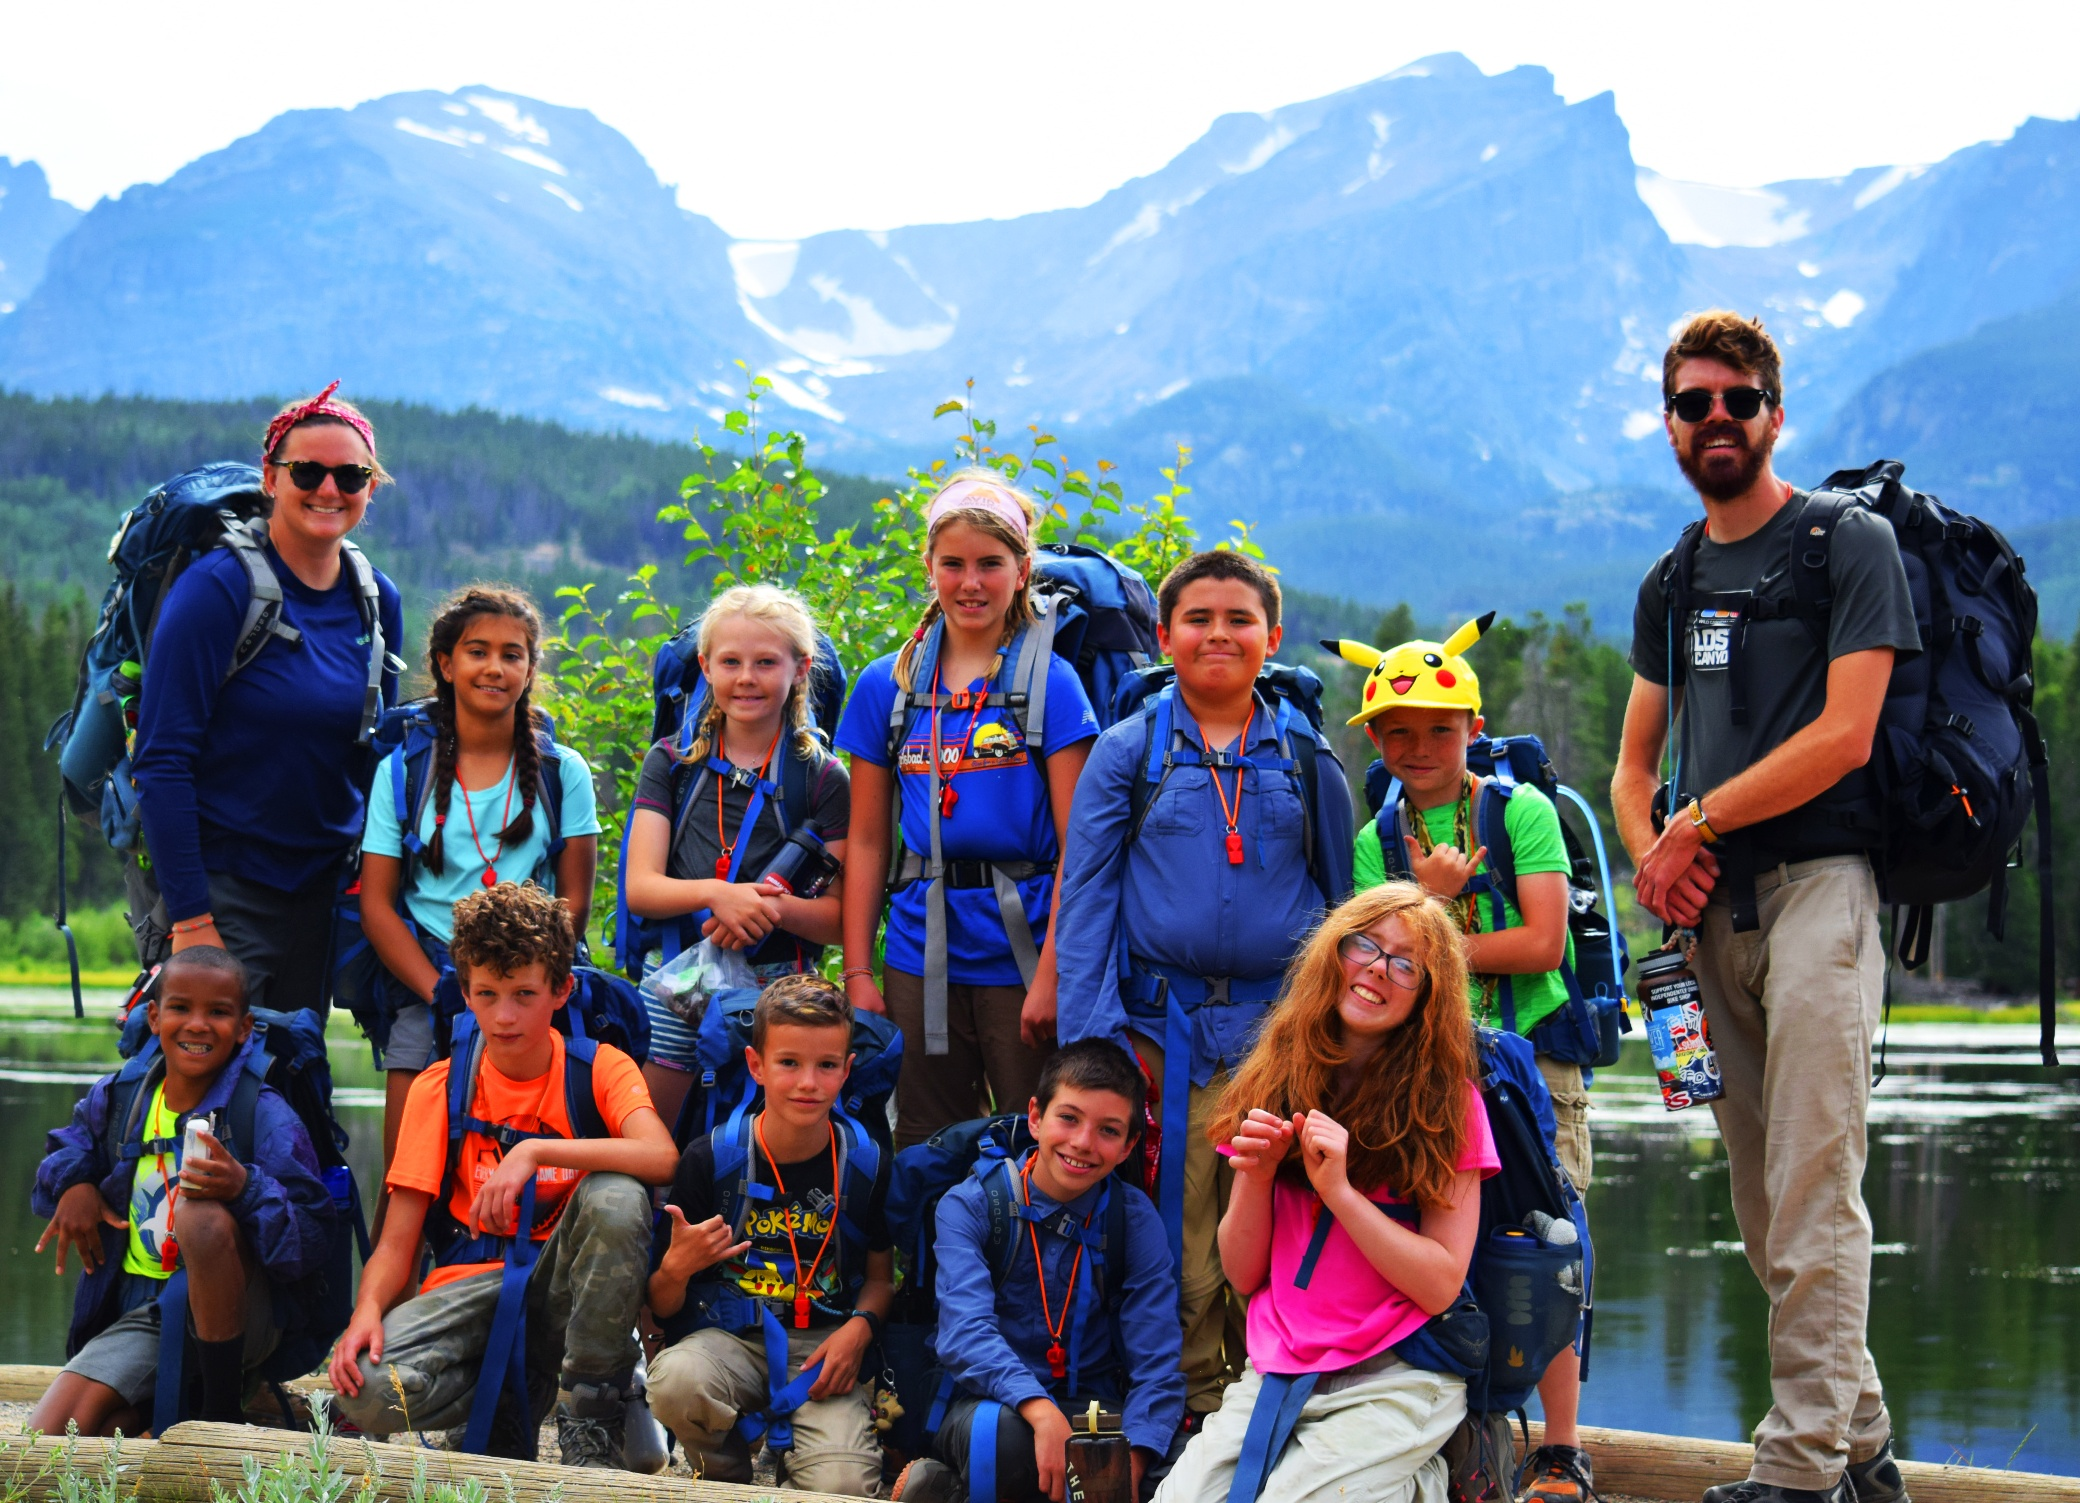 group backpacking in Colorado mountains